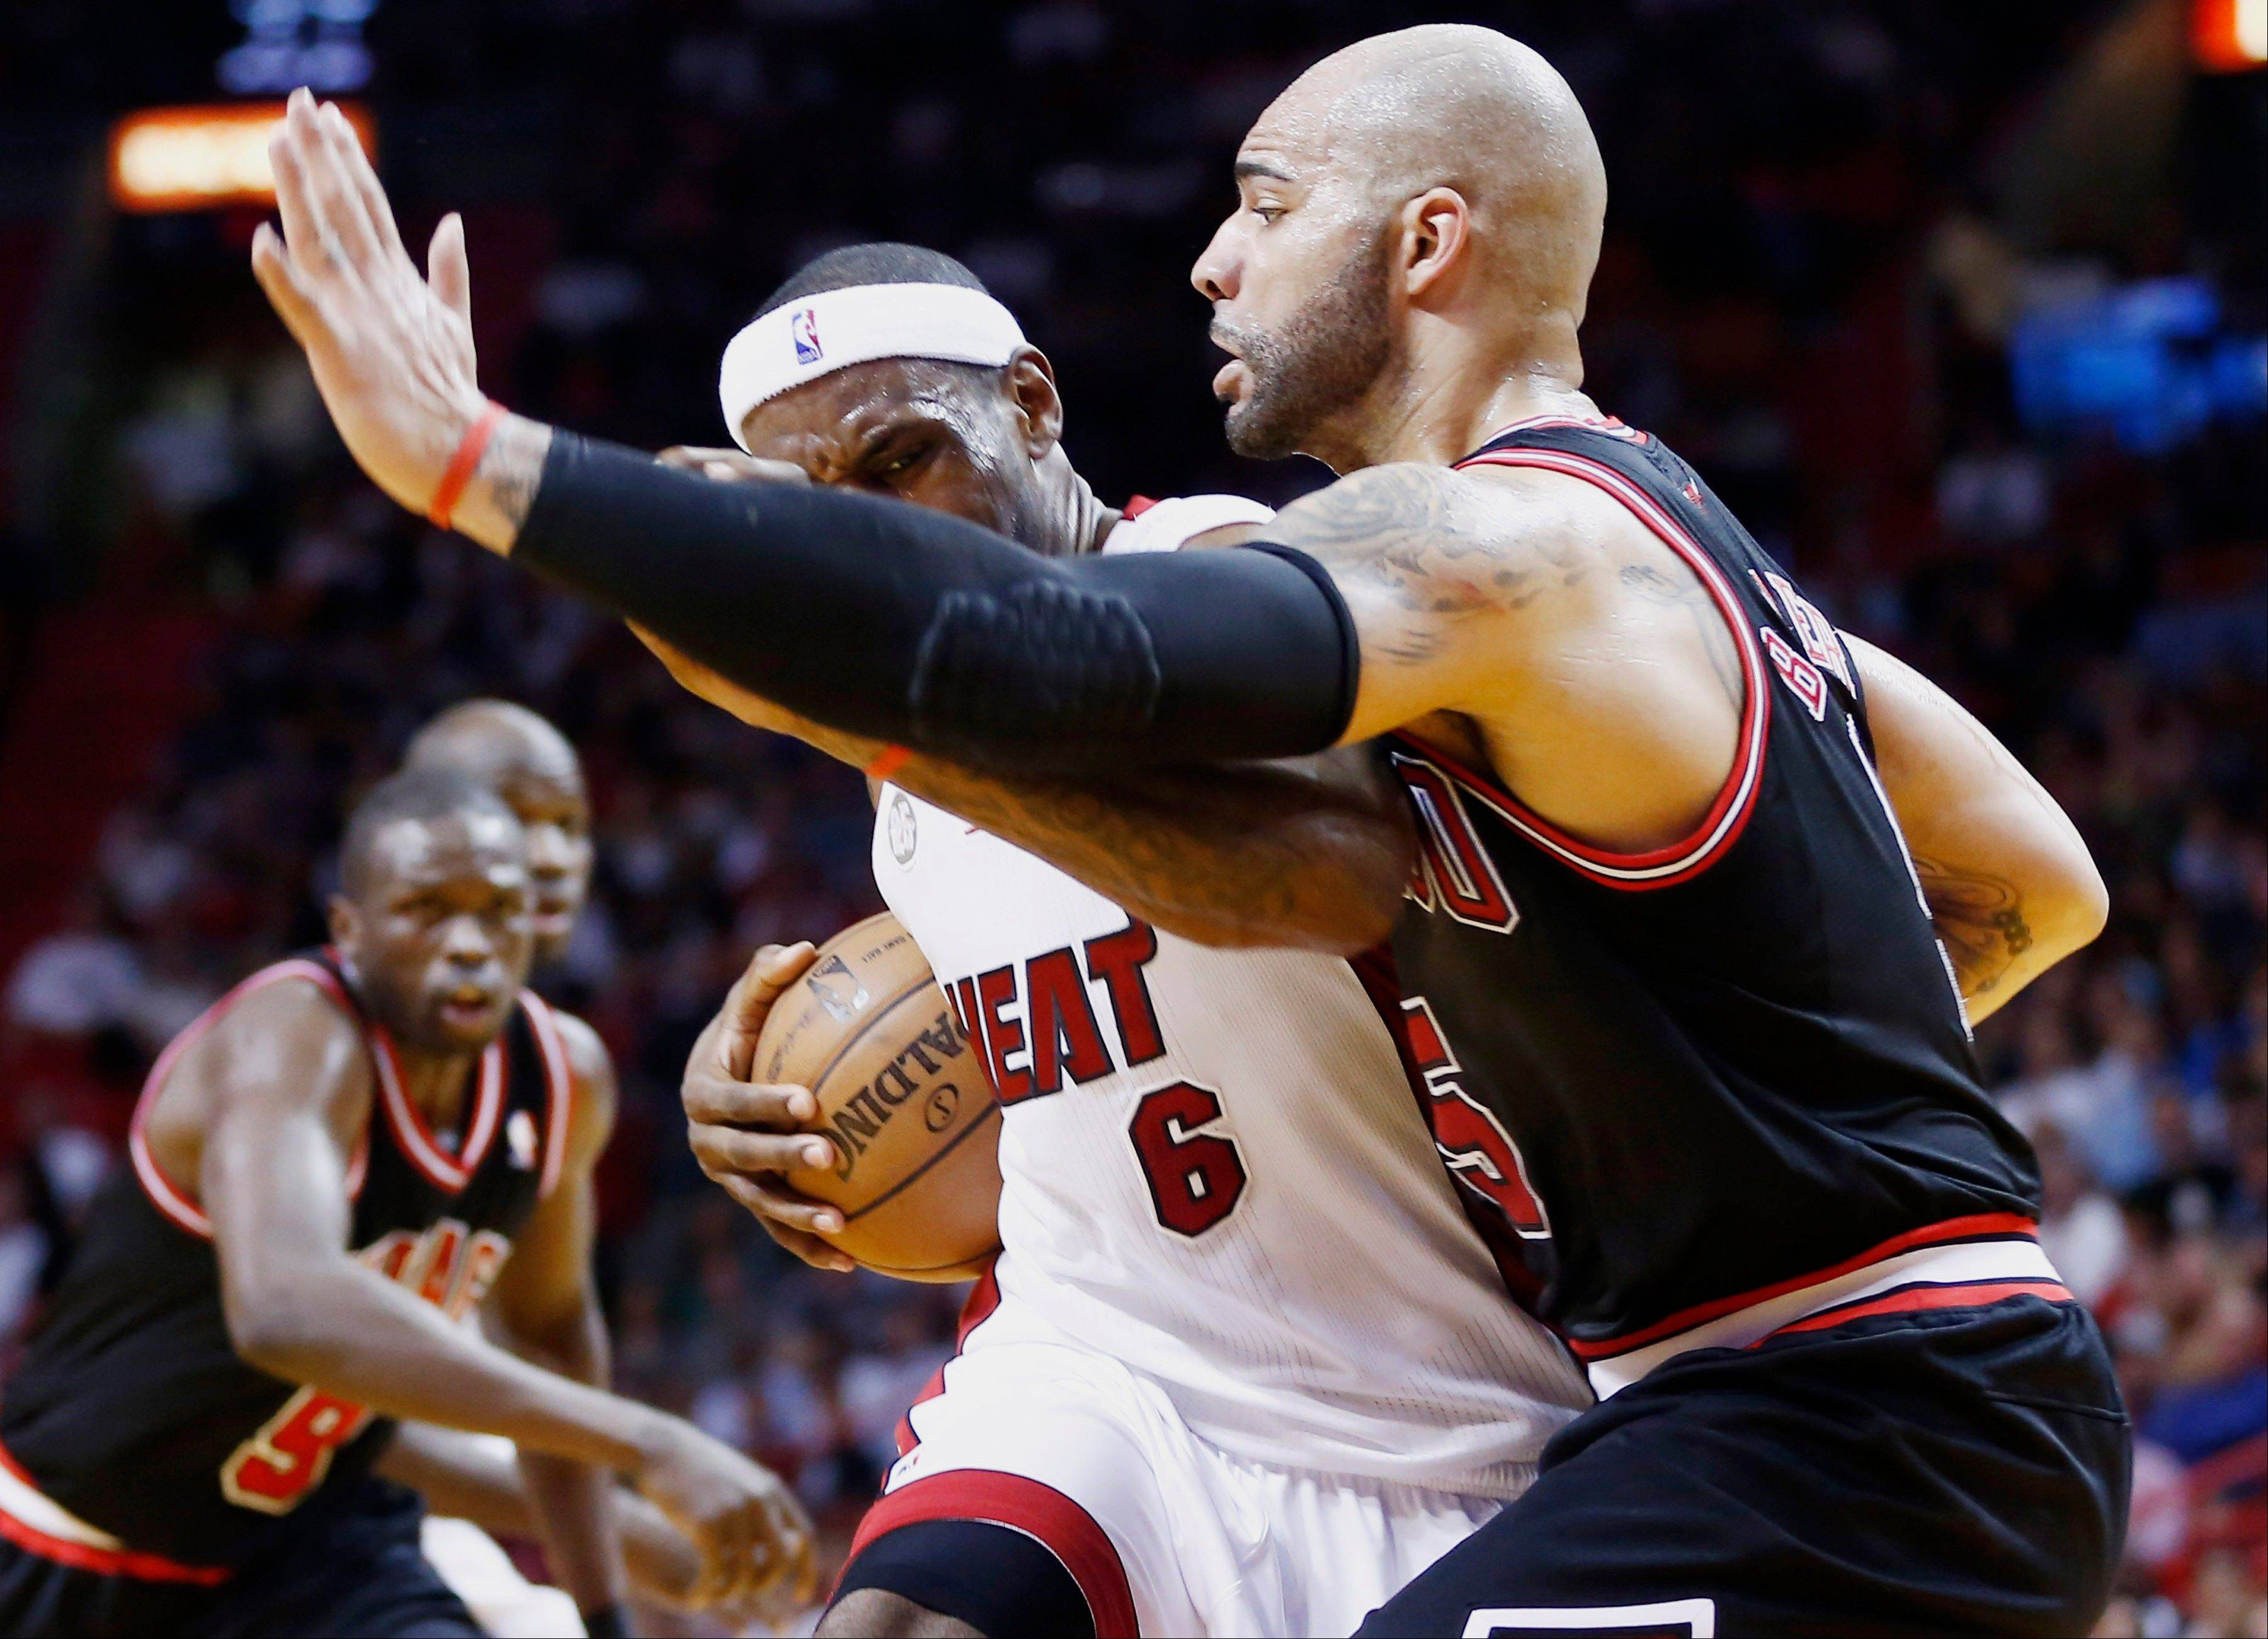 Carlos Boozer scored 27 points and the Bulls dominated on the boards to become only the third visiting team to win in Miami this season, beating the Heat 96-89 Friday night.